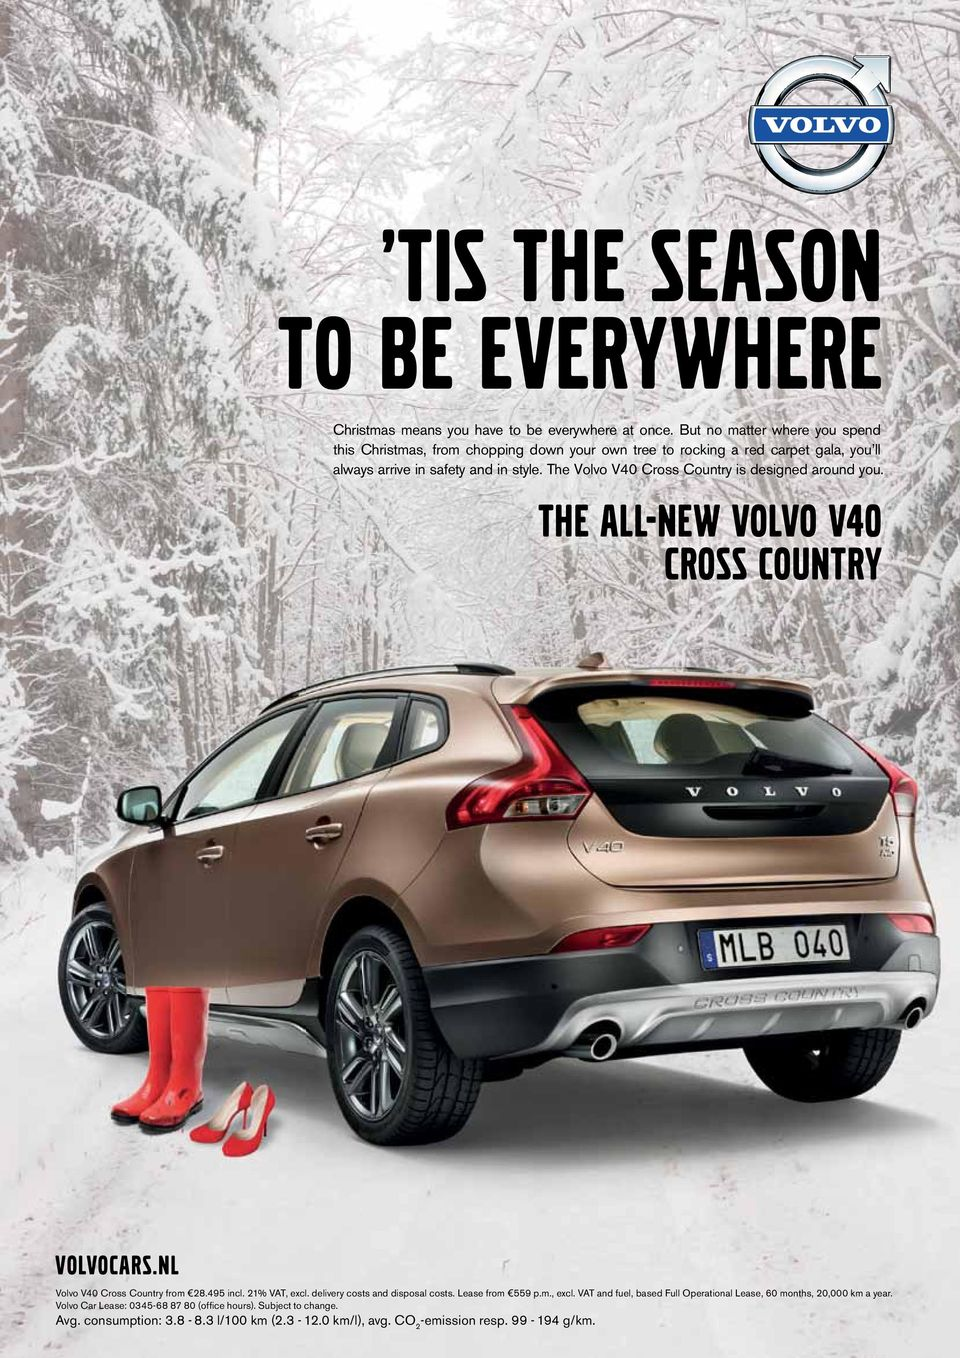 The Volvo V40 Cross Country is designed around you. THE ALL-NEW VOLVO V40 CROSS COUNTRY volvocars.nl Volvo V40 Cross Country from 28.495 incl. 21% VAT, excl.